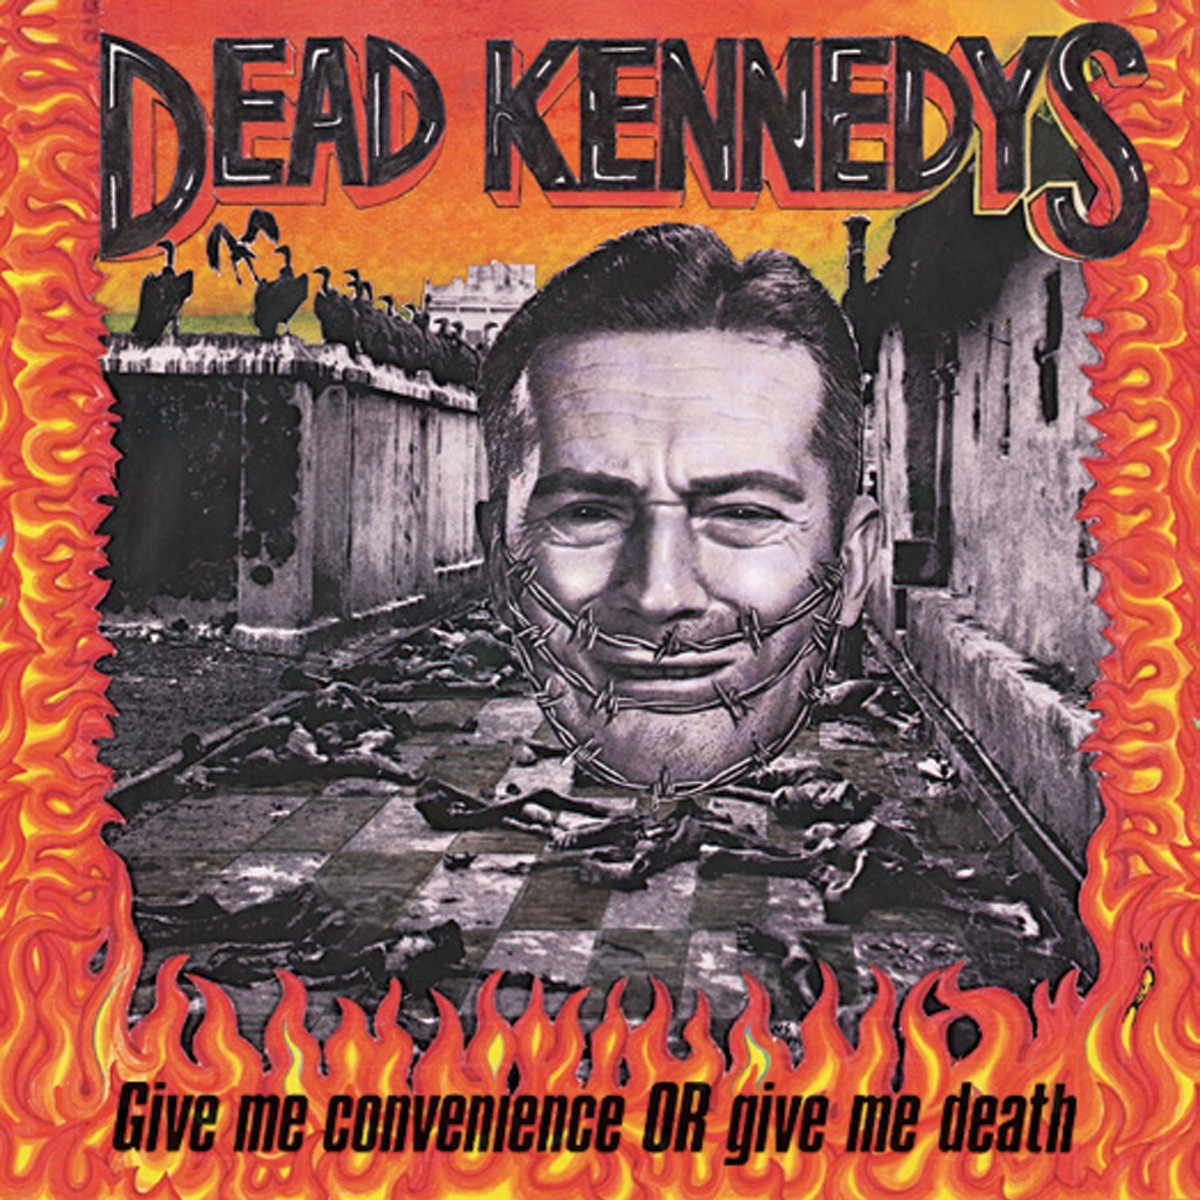 Dead Kennedys - Give Me Convenience or Give Me Death VINYL - PLATE063LP